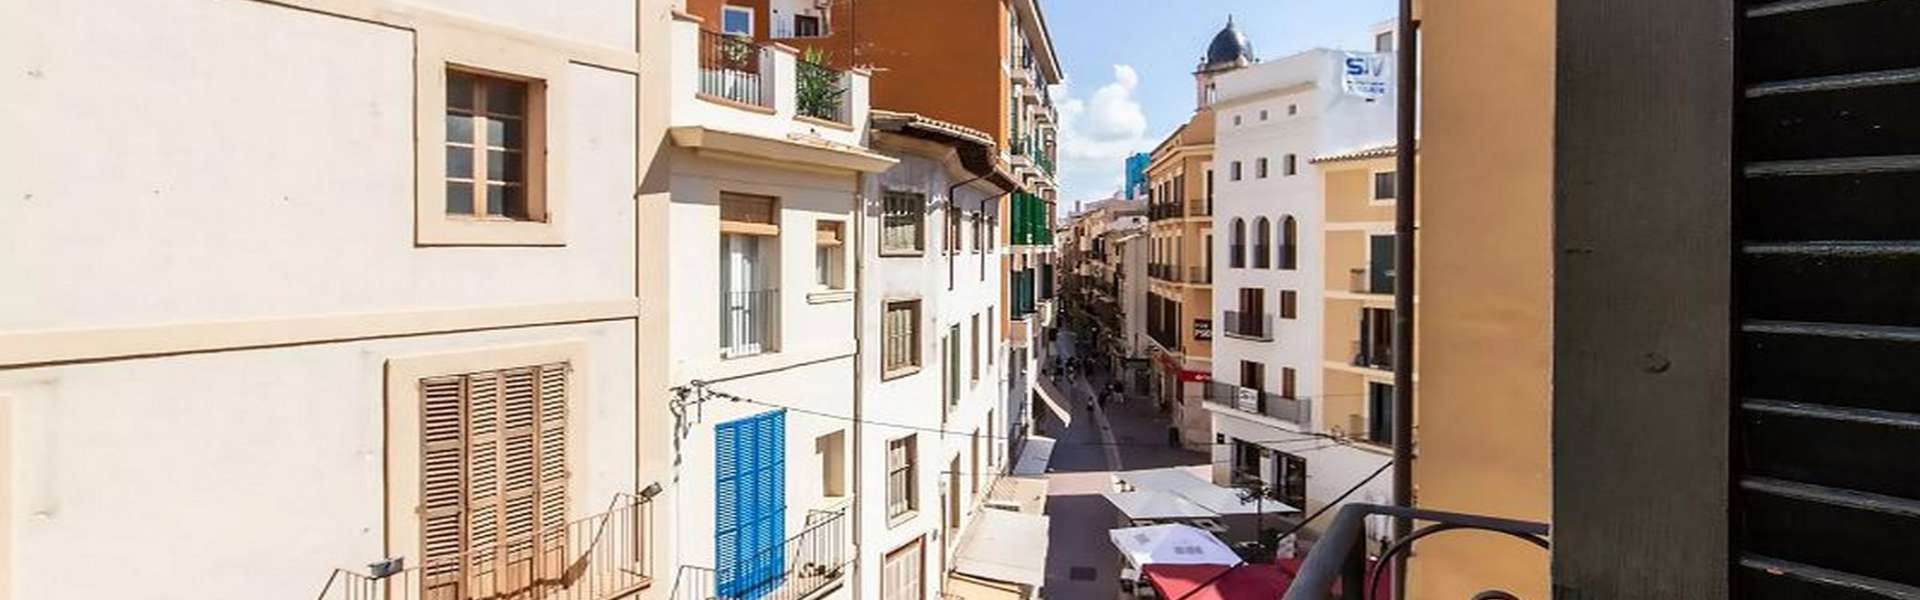 Palma/Old Town - Renovated apartment for sale in the heart of the city